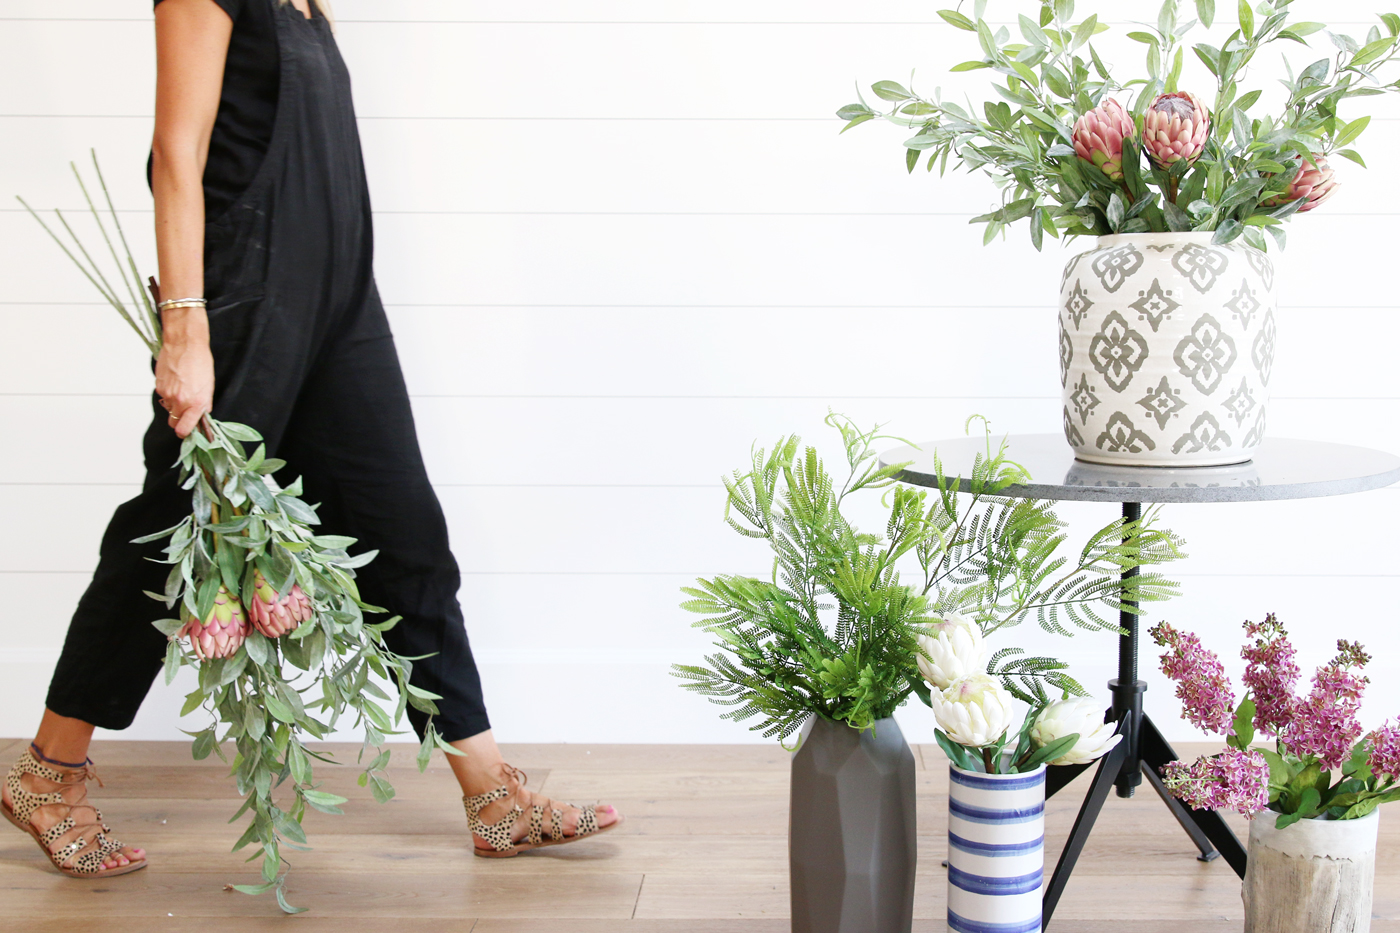 Guide to styling faux greenery